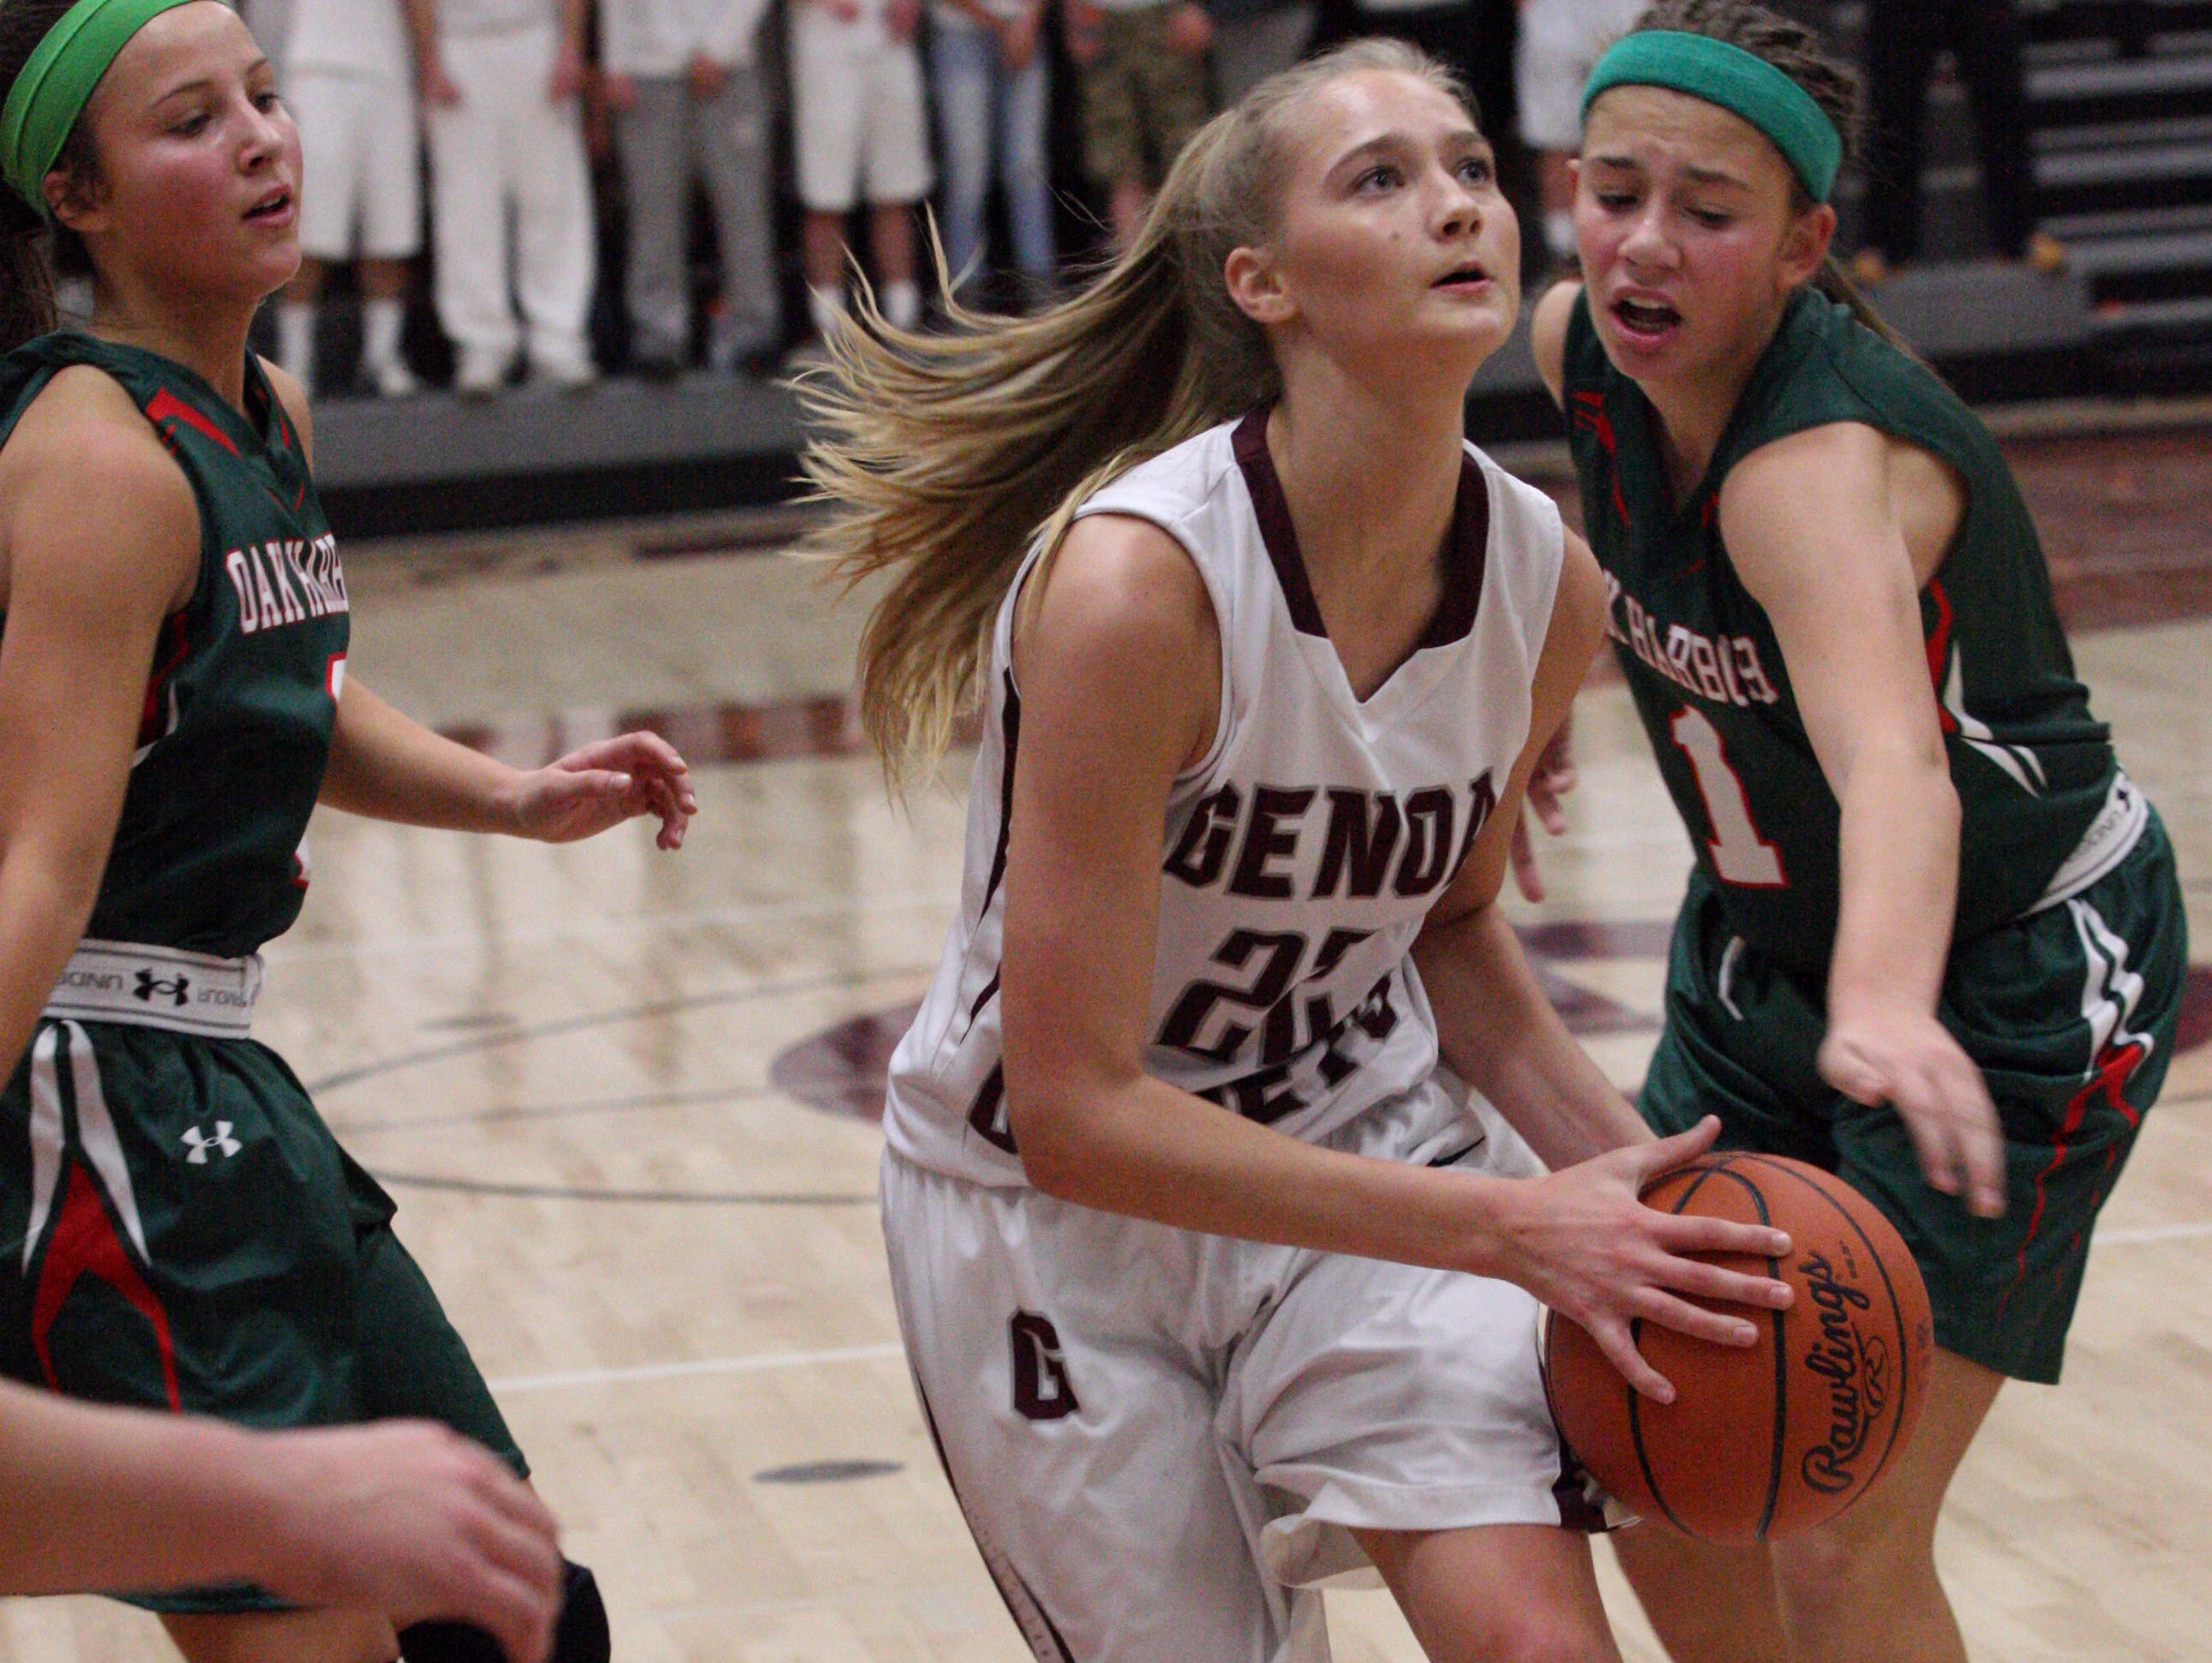 genoa girls View the schedule, scores, league standings, rankings and articles for the genoa-kingston cogs girls basketball team on maxpreps.